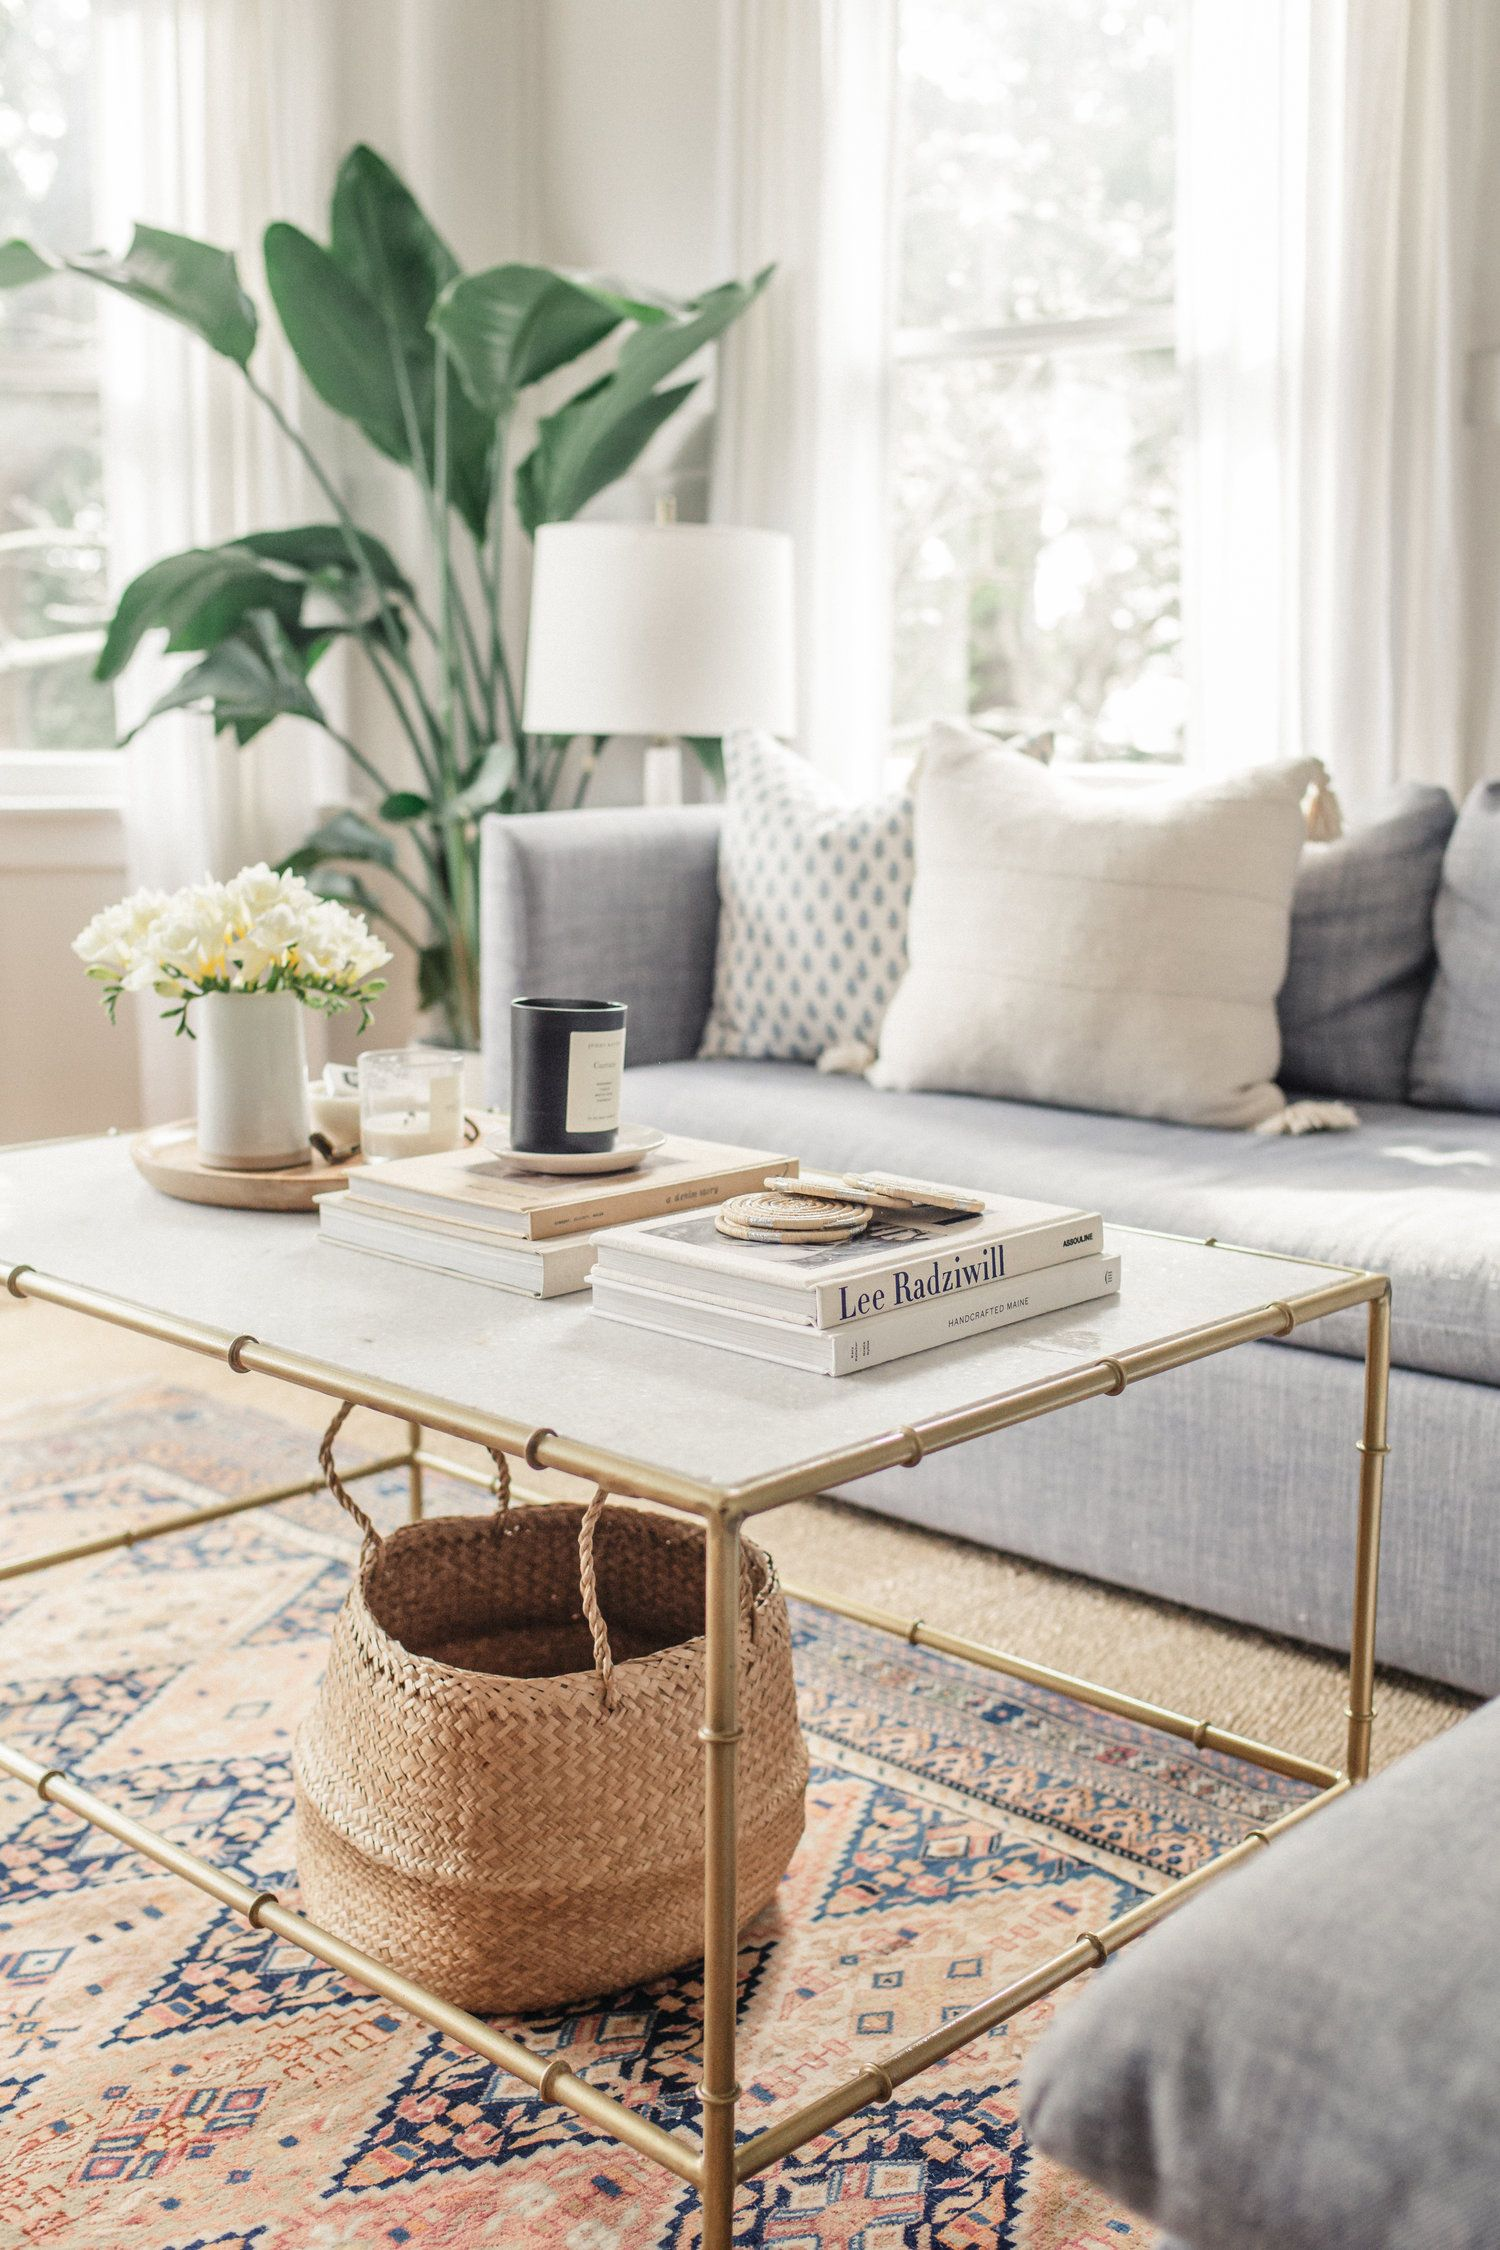 Make A Statement With Curated Coffee Table Books Scout Nimble Table Decor Living Room Coffee Table Living Room Decor Modern [ 2250 x 1500 Pixel ]